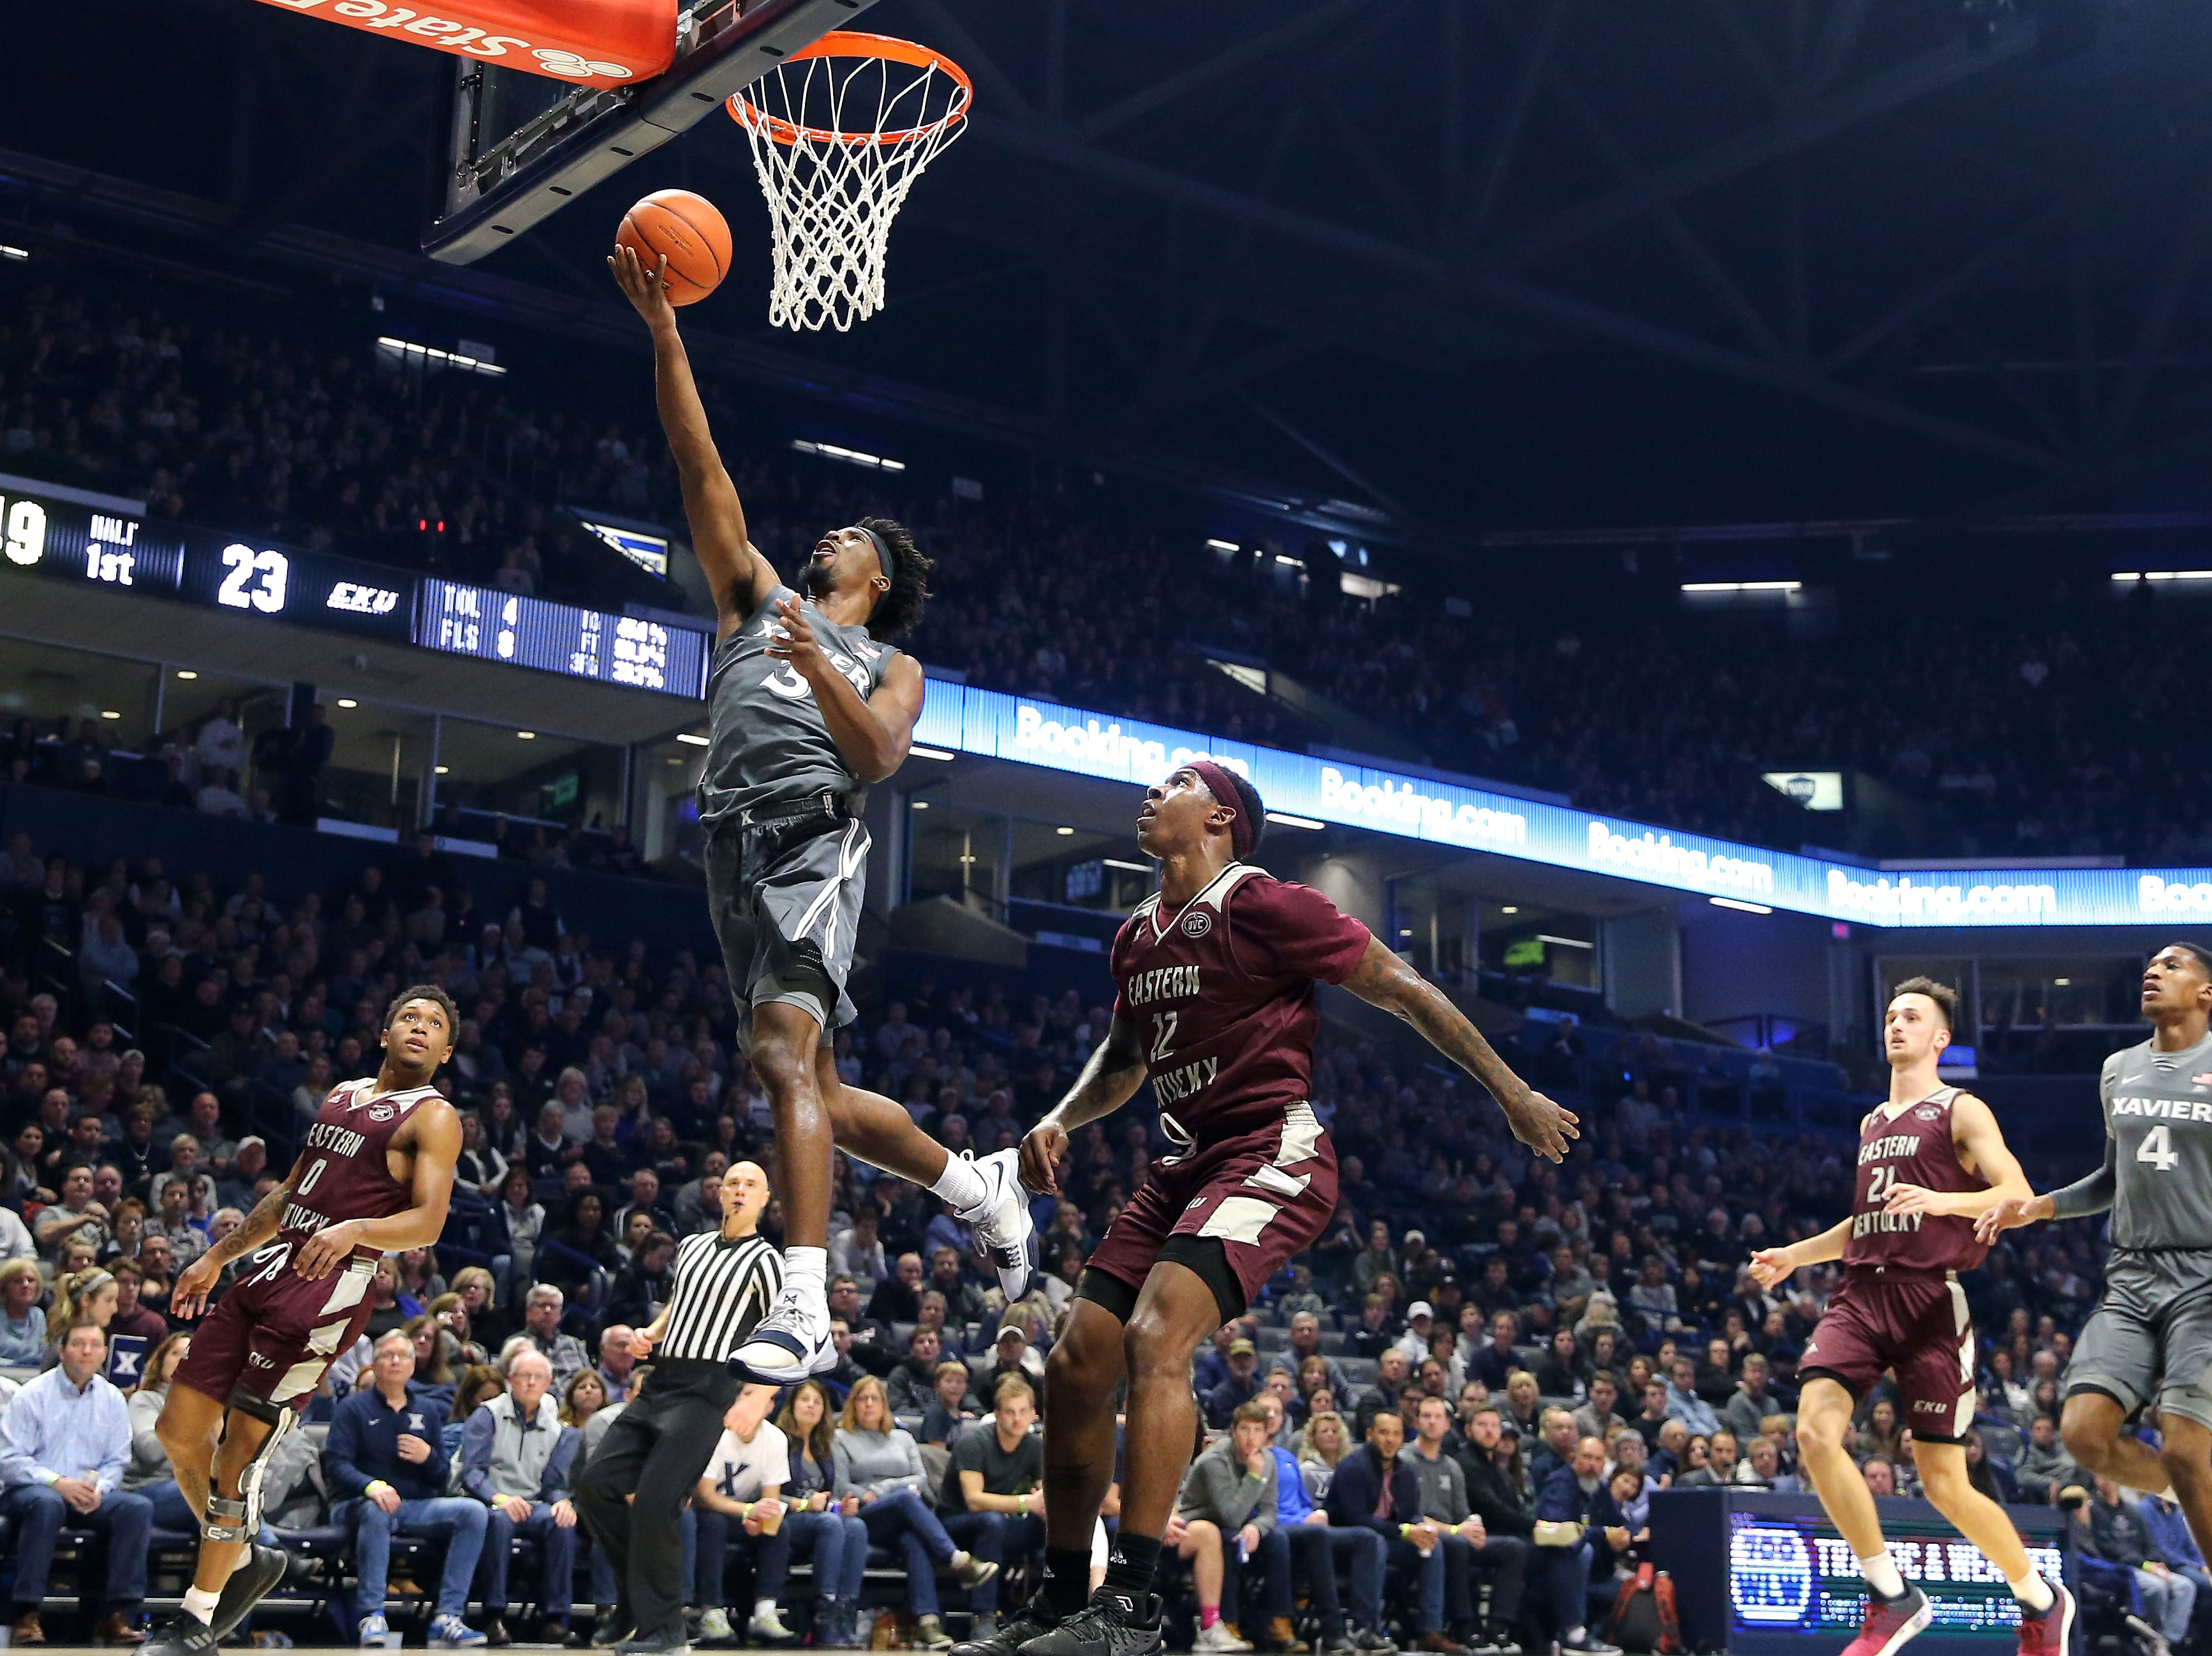 Xavier Musketeers guard Quentin Goodin (3) scores in the first half of an NCAA college basketball game against the Eastern Kentucky Colonels, Saturday, Dec. 15, 2018, at Cintas Center in Cincinnati, Ohio